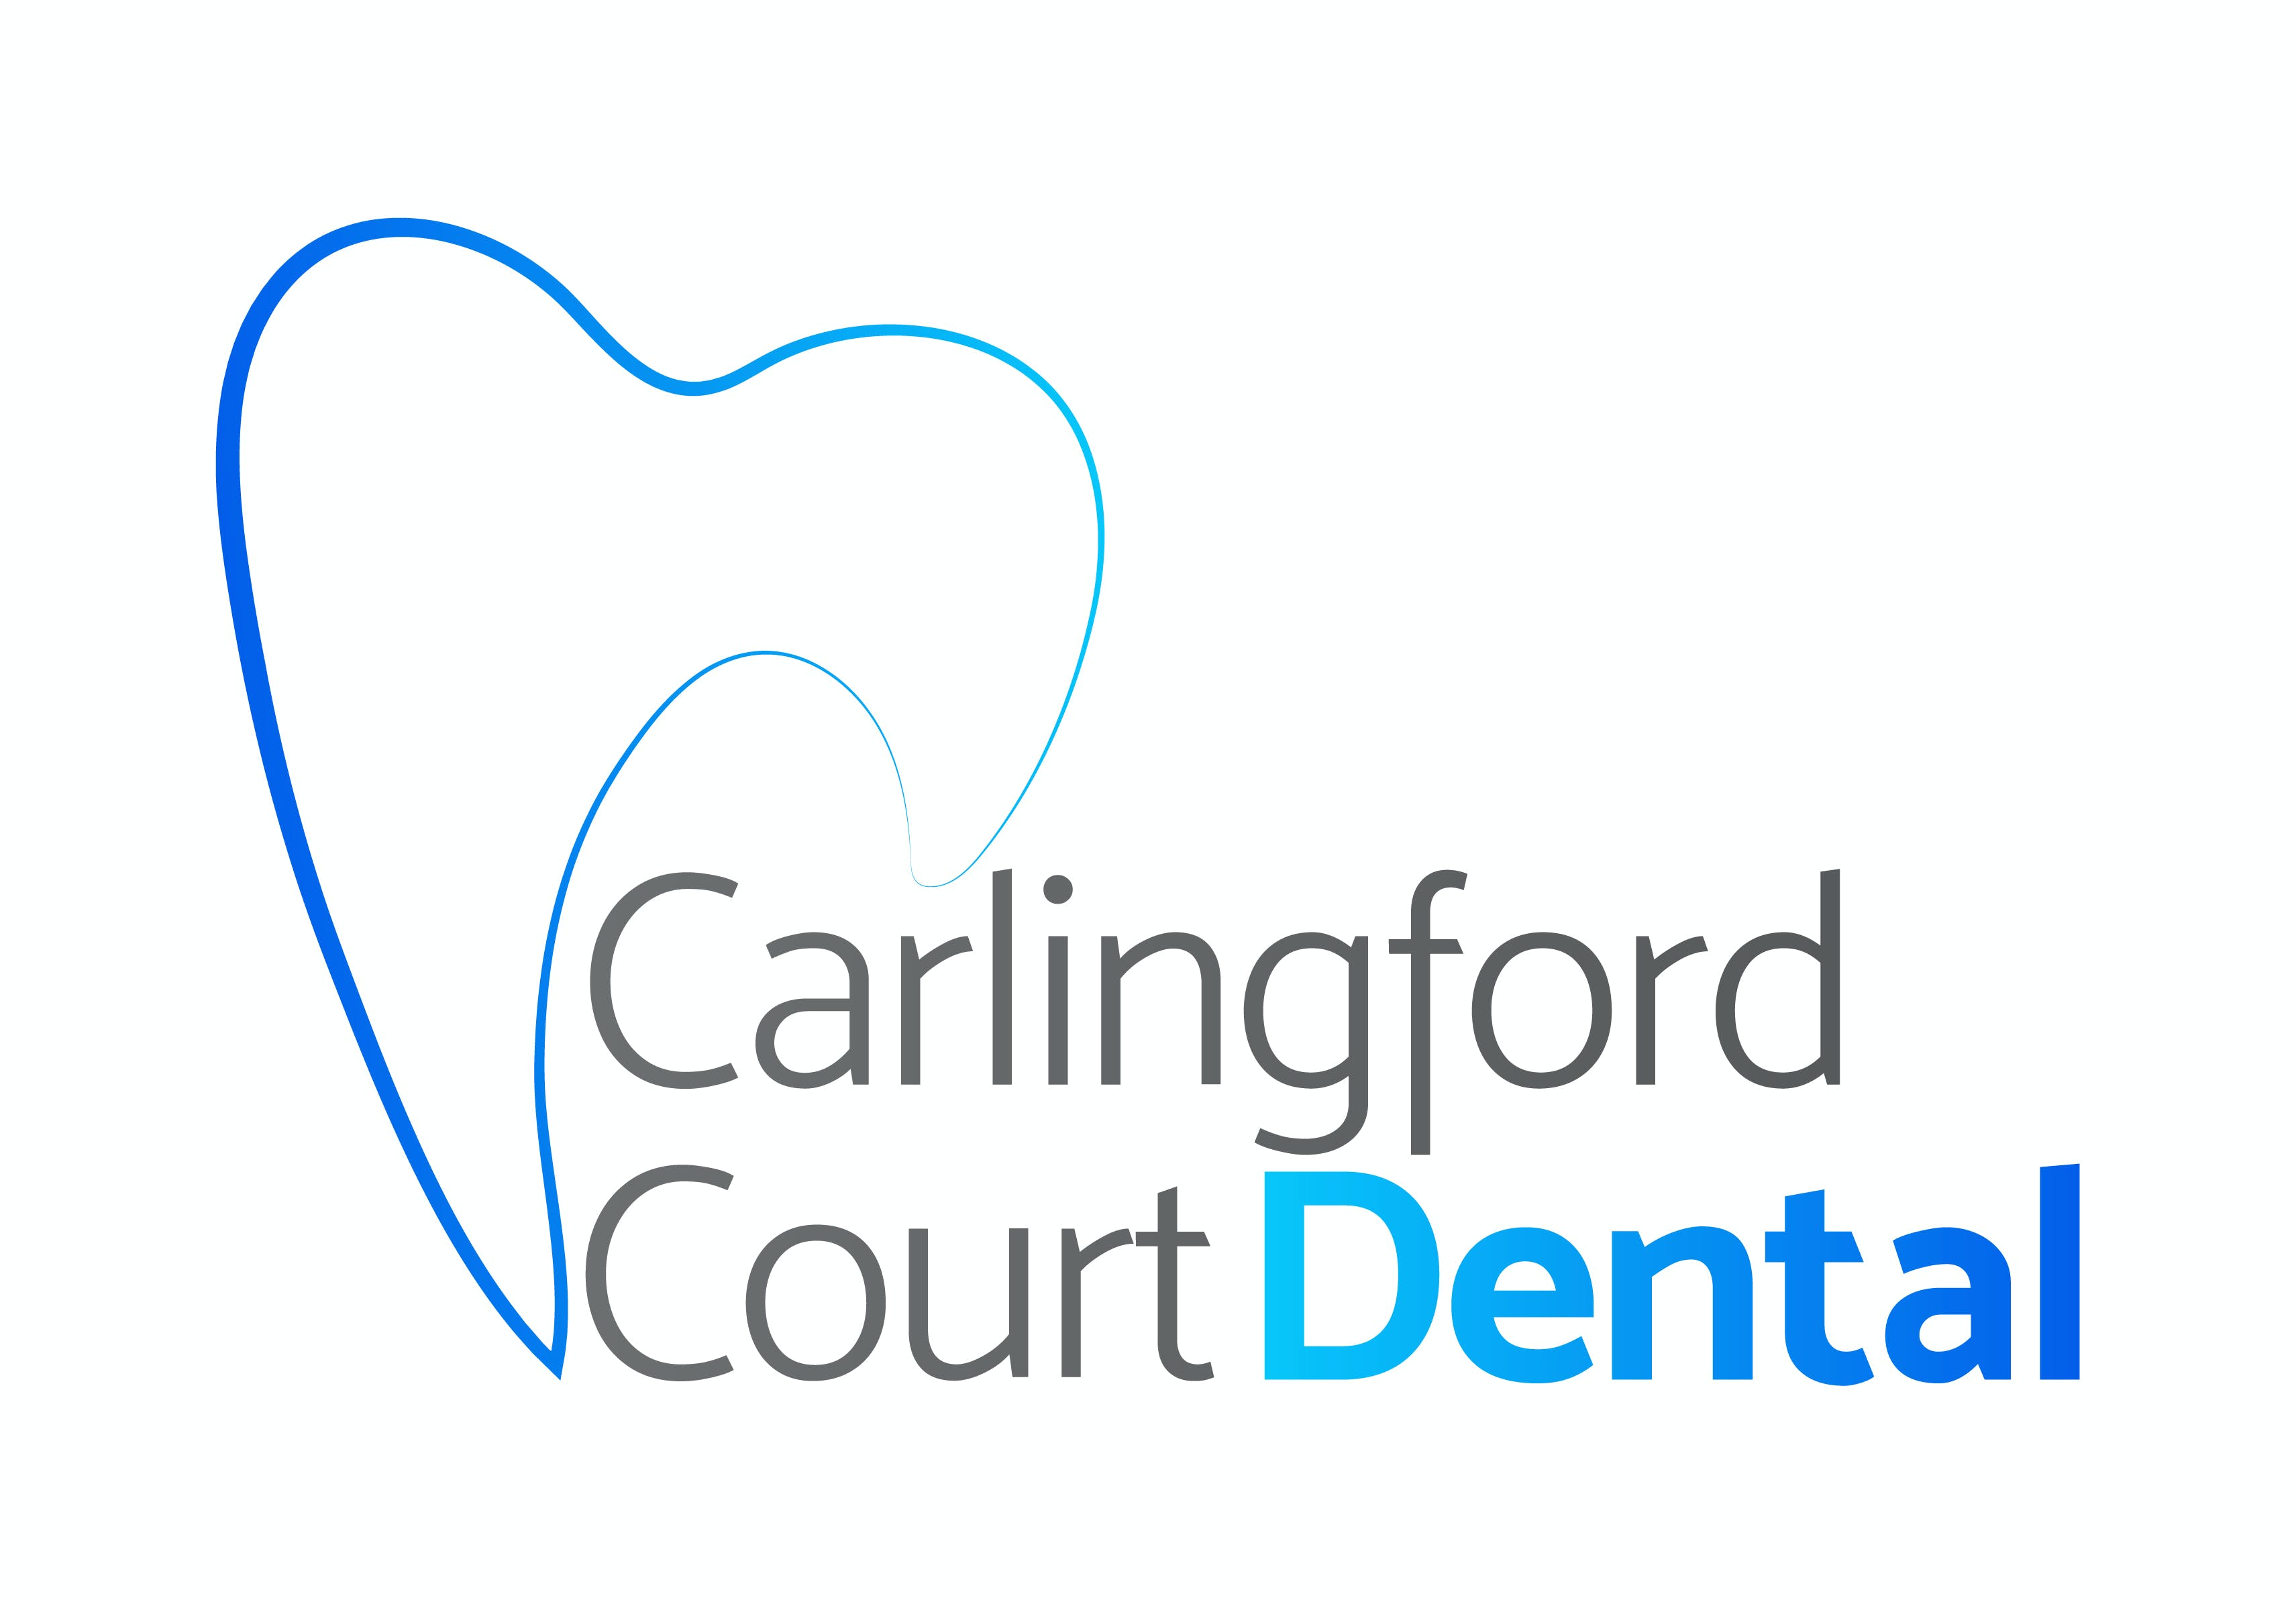 Carlingford Court Dental Logo